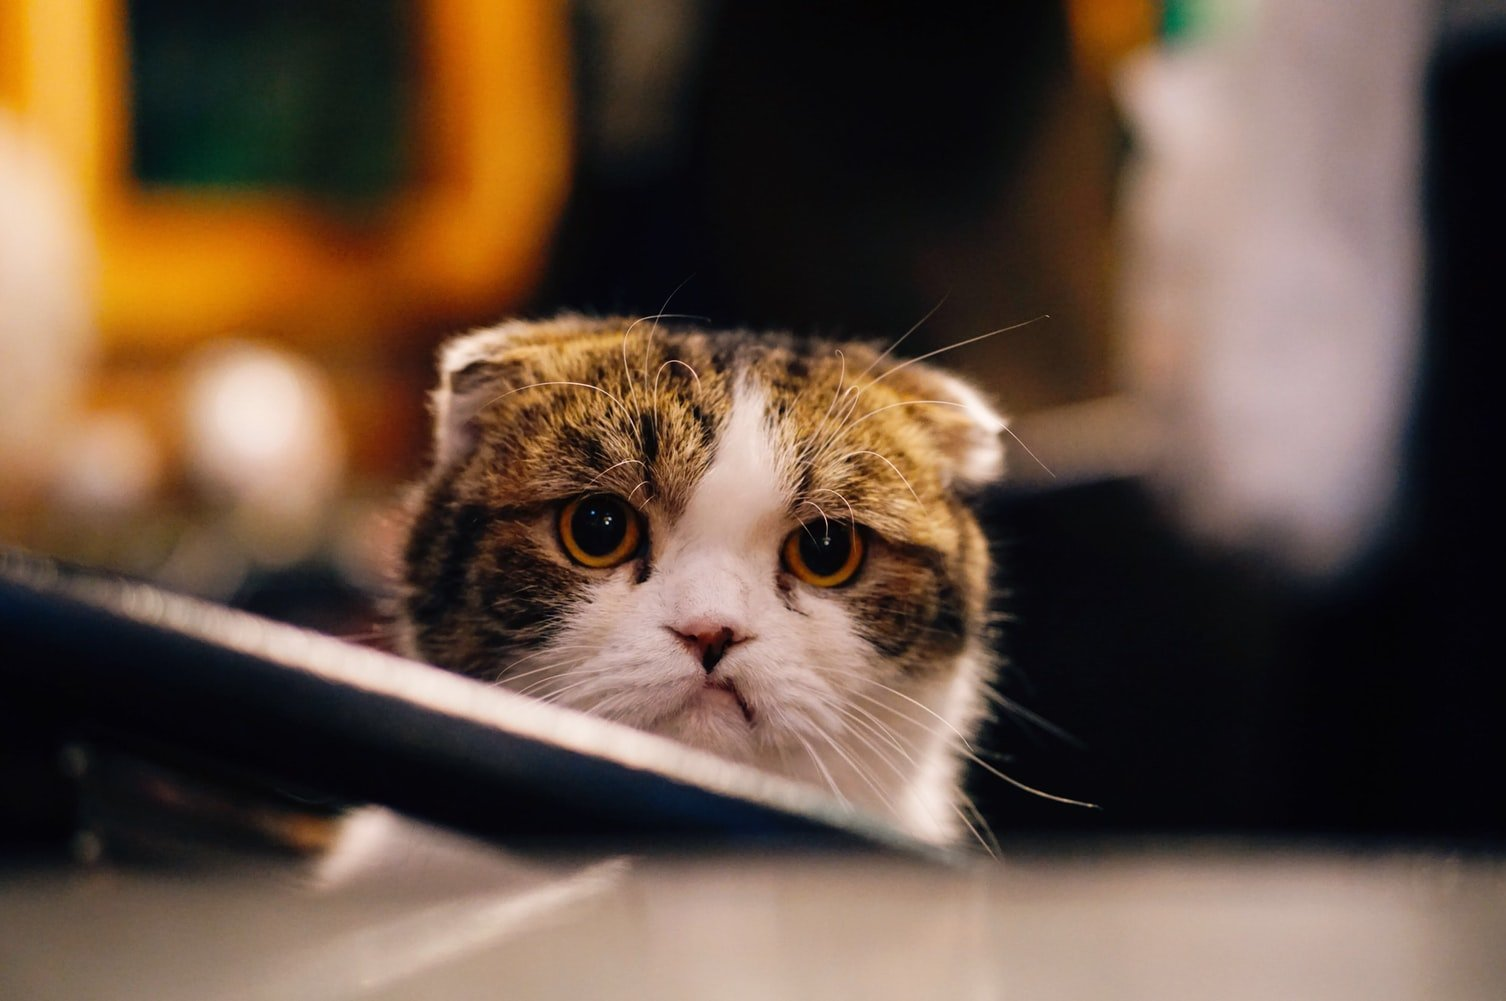 Do cats go to heaven when they die